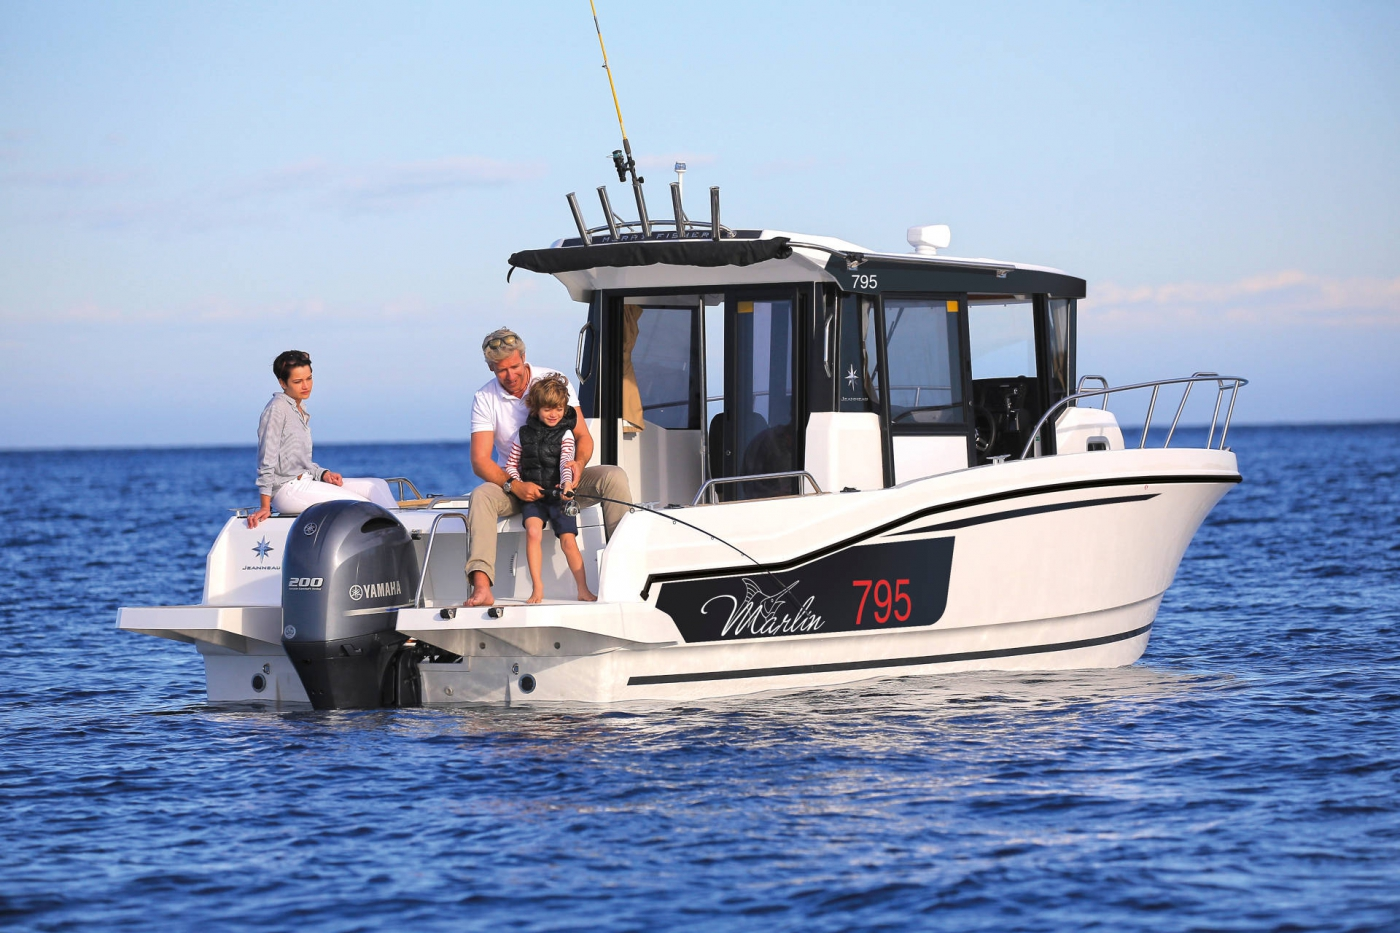 Jeanneau Merry Fisher 795 Marlin Motor Boat - Sea Ventures